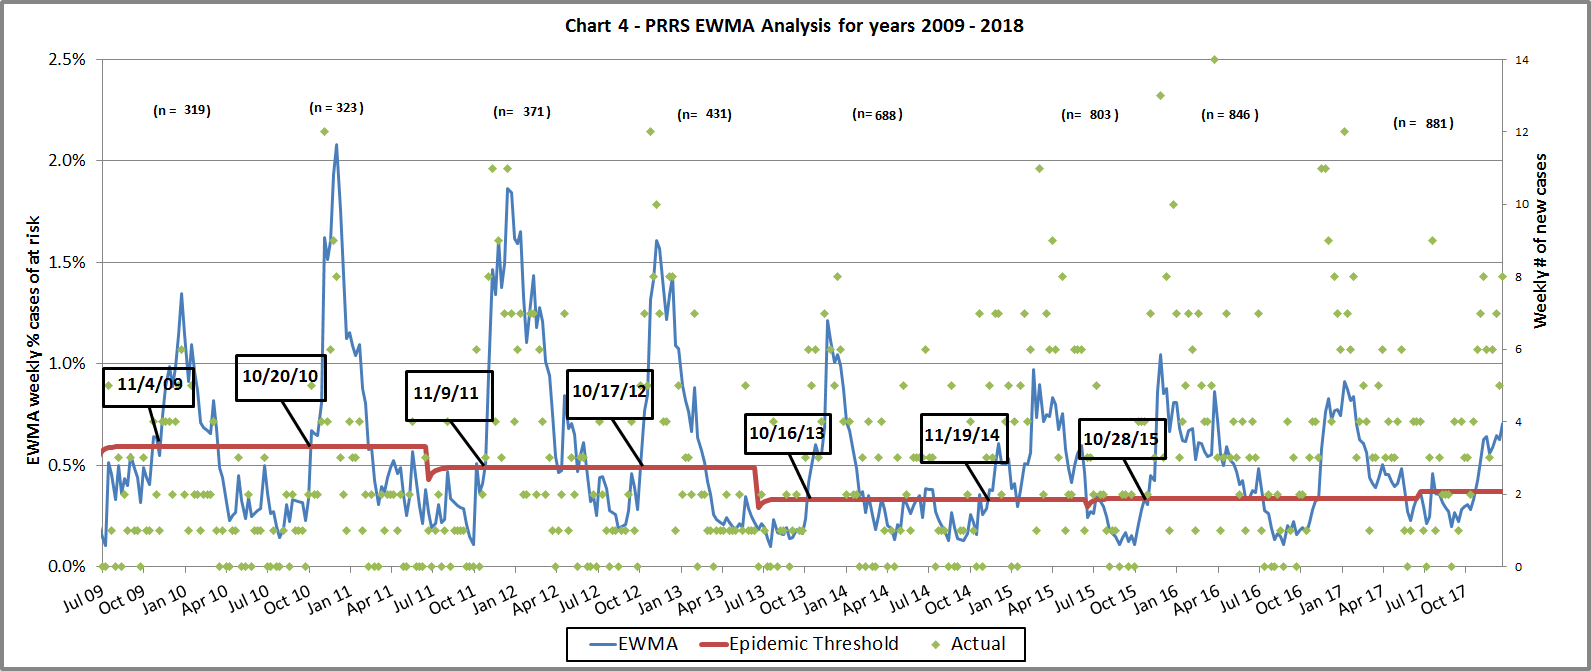 Chart showing the PRRS EWMA over the years